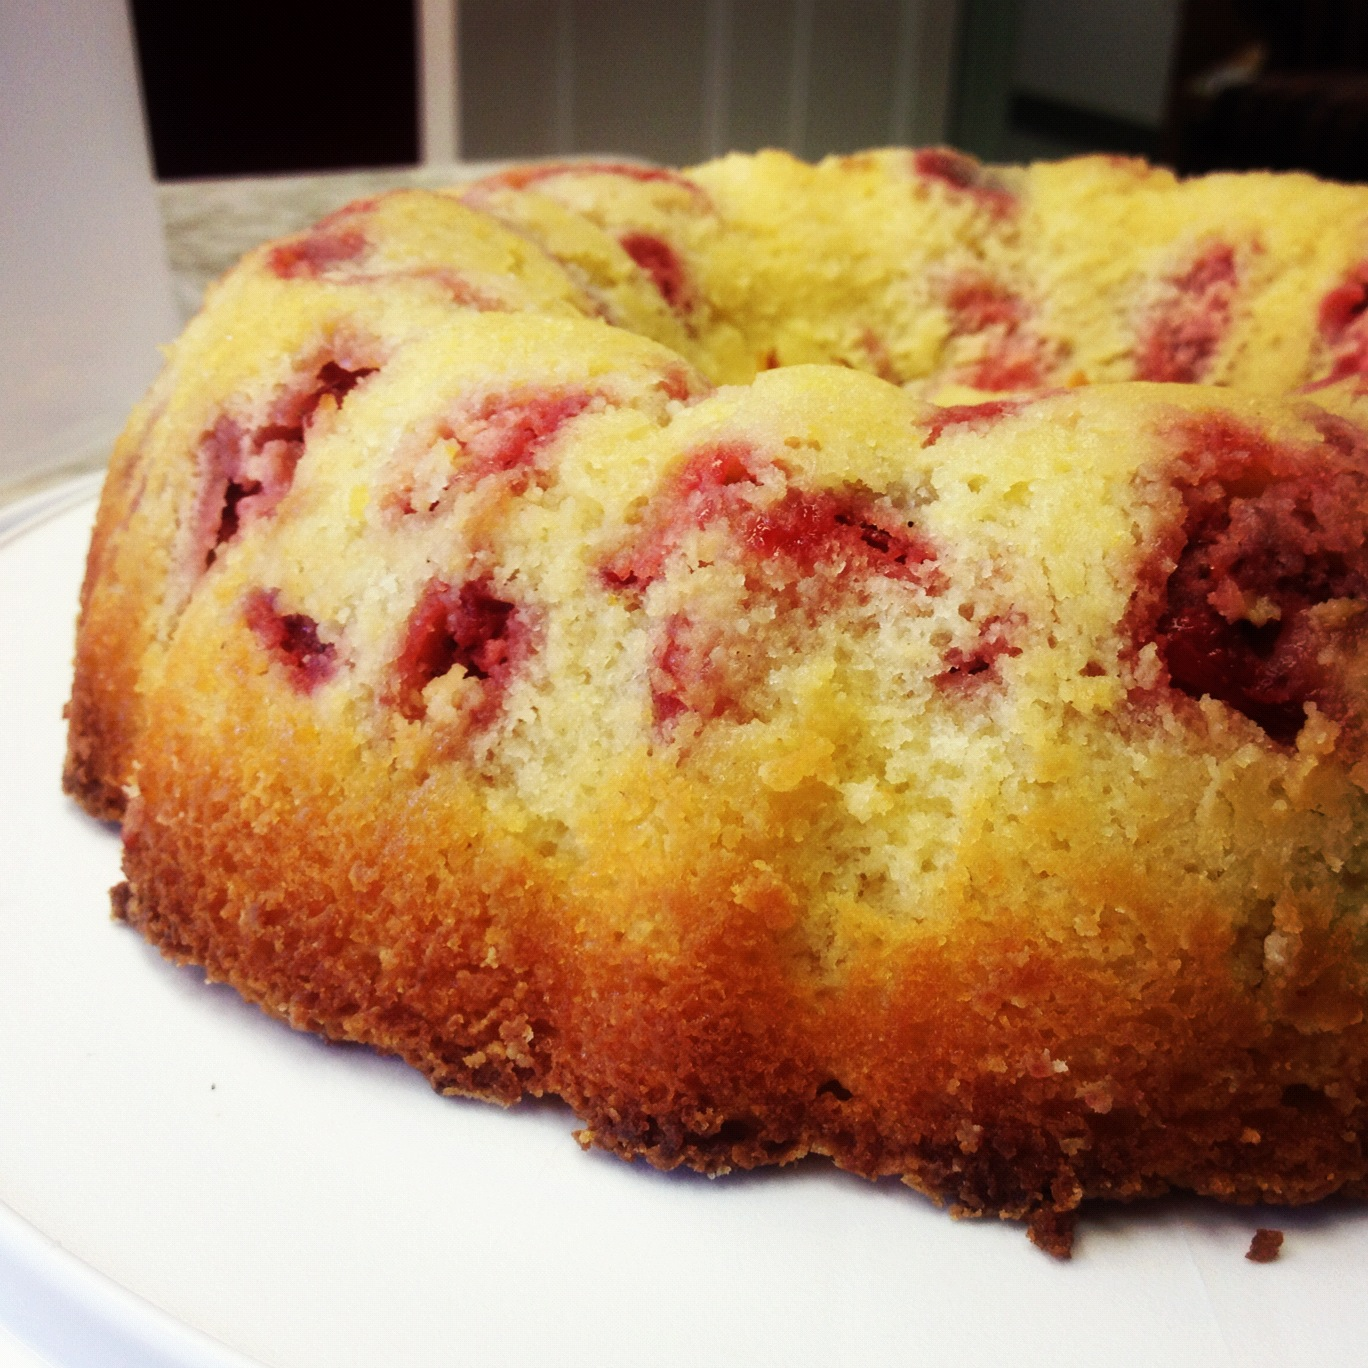 Strawberry Lemon Pound Cake From Scratch